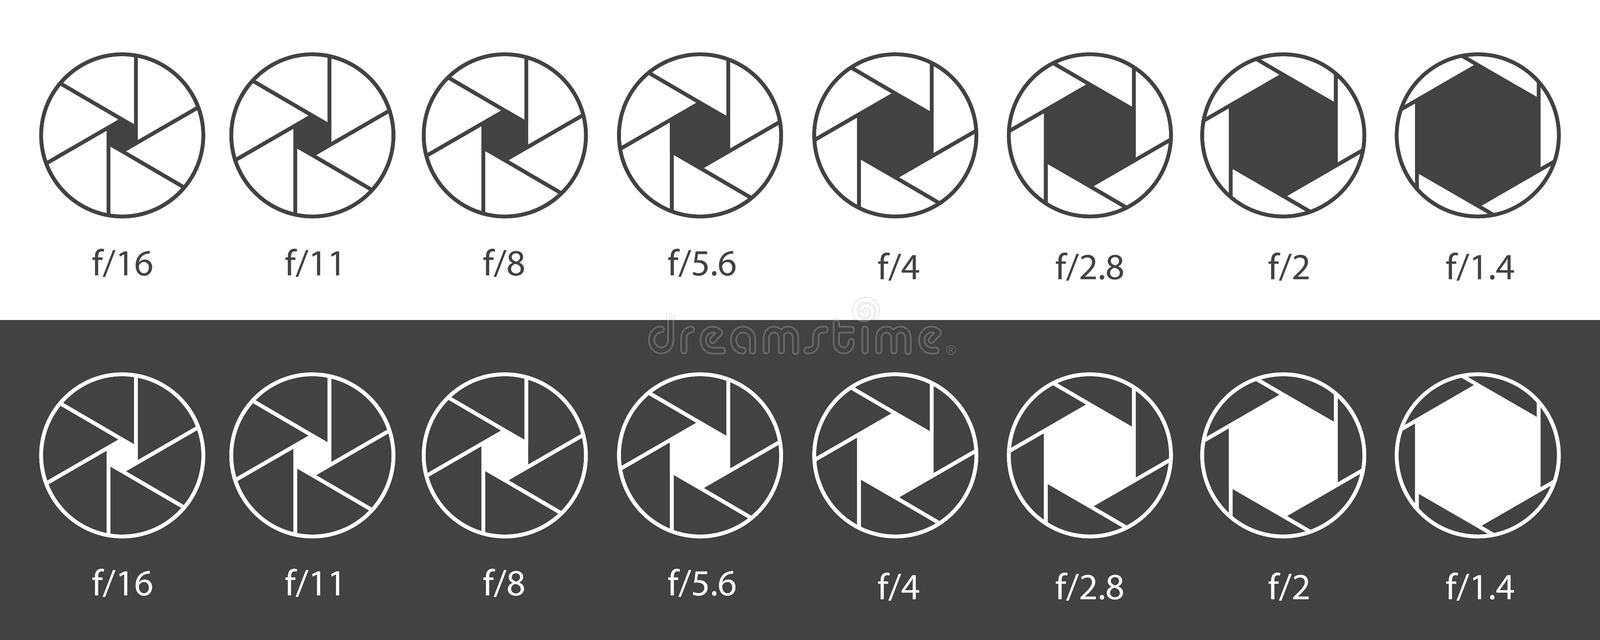 Creative illustration of camera shutter aperture with different iso isolated on background. Art design monochrome diagrams. Collection. Abstract concept graphic royalty free illustration